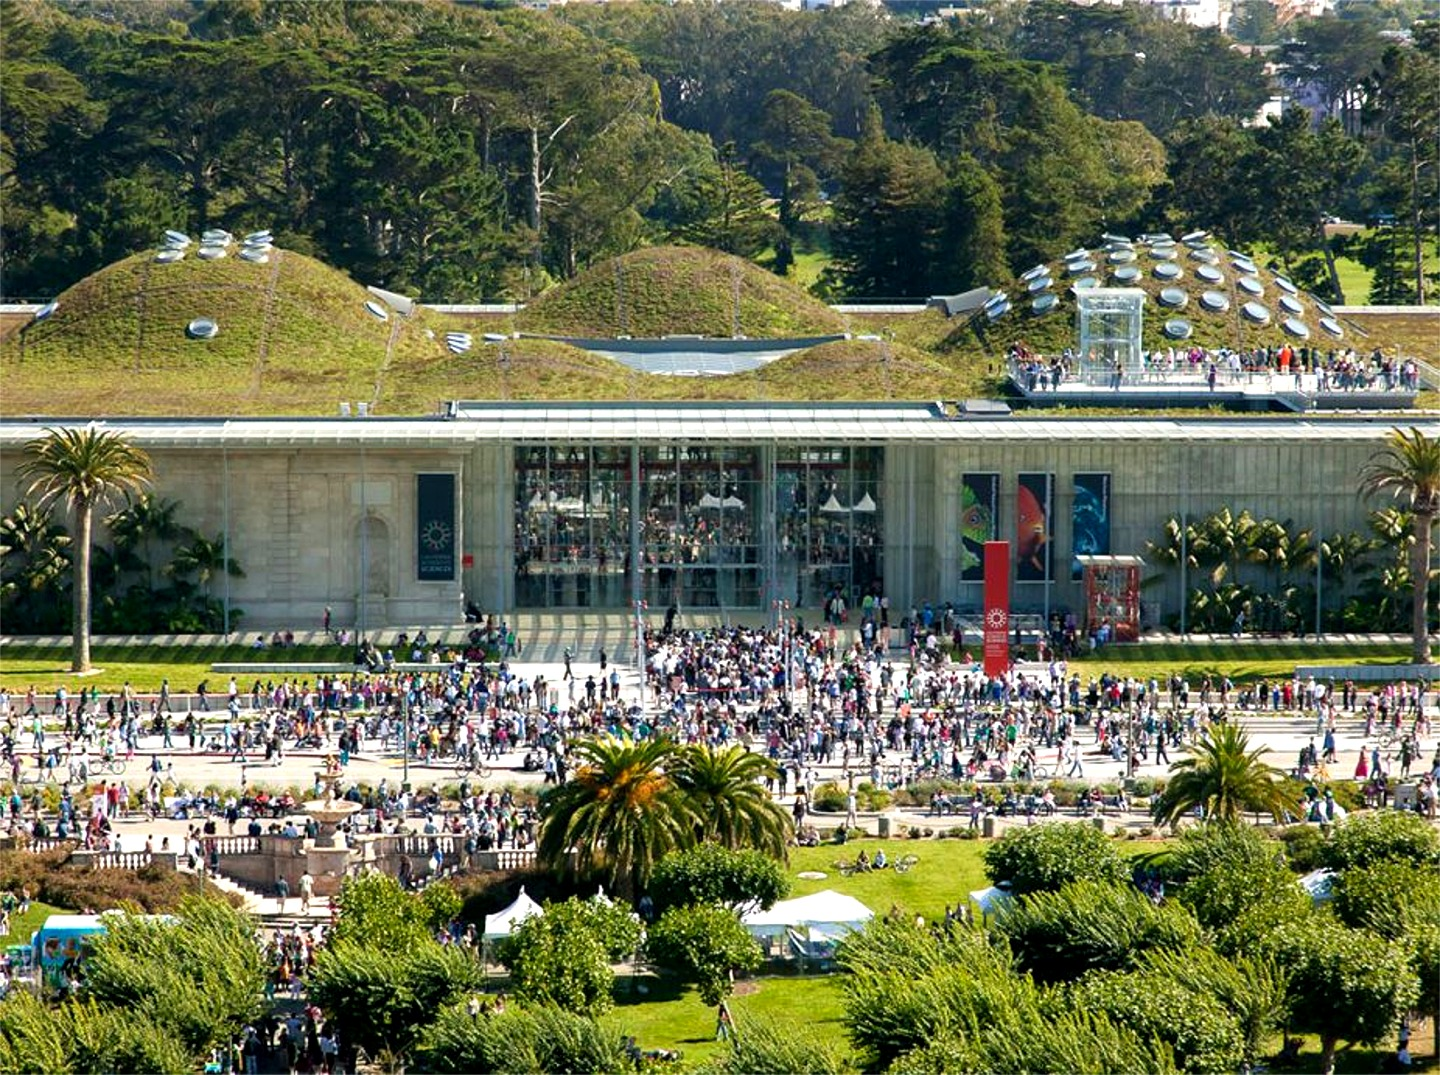 [thematic report] The Green Architecture of the California Academy of Sciences